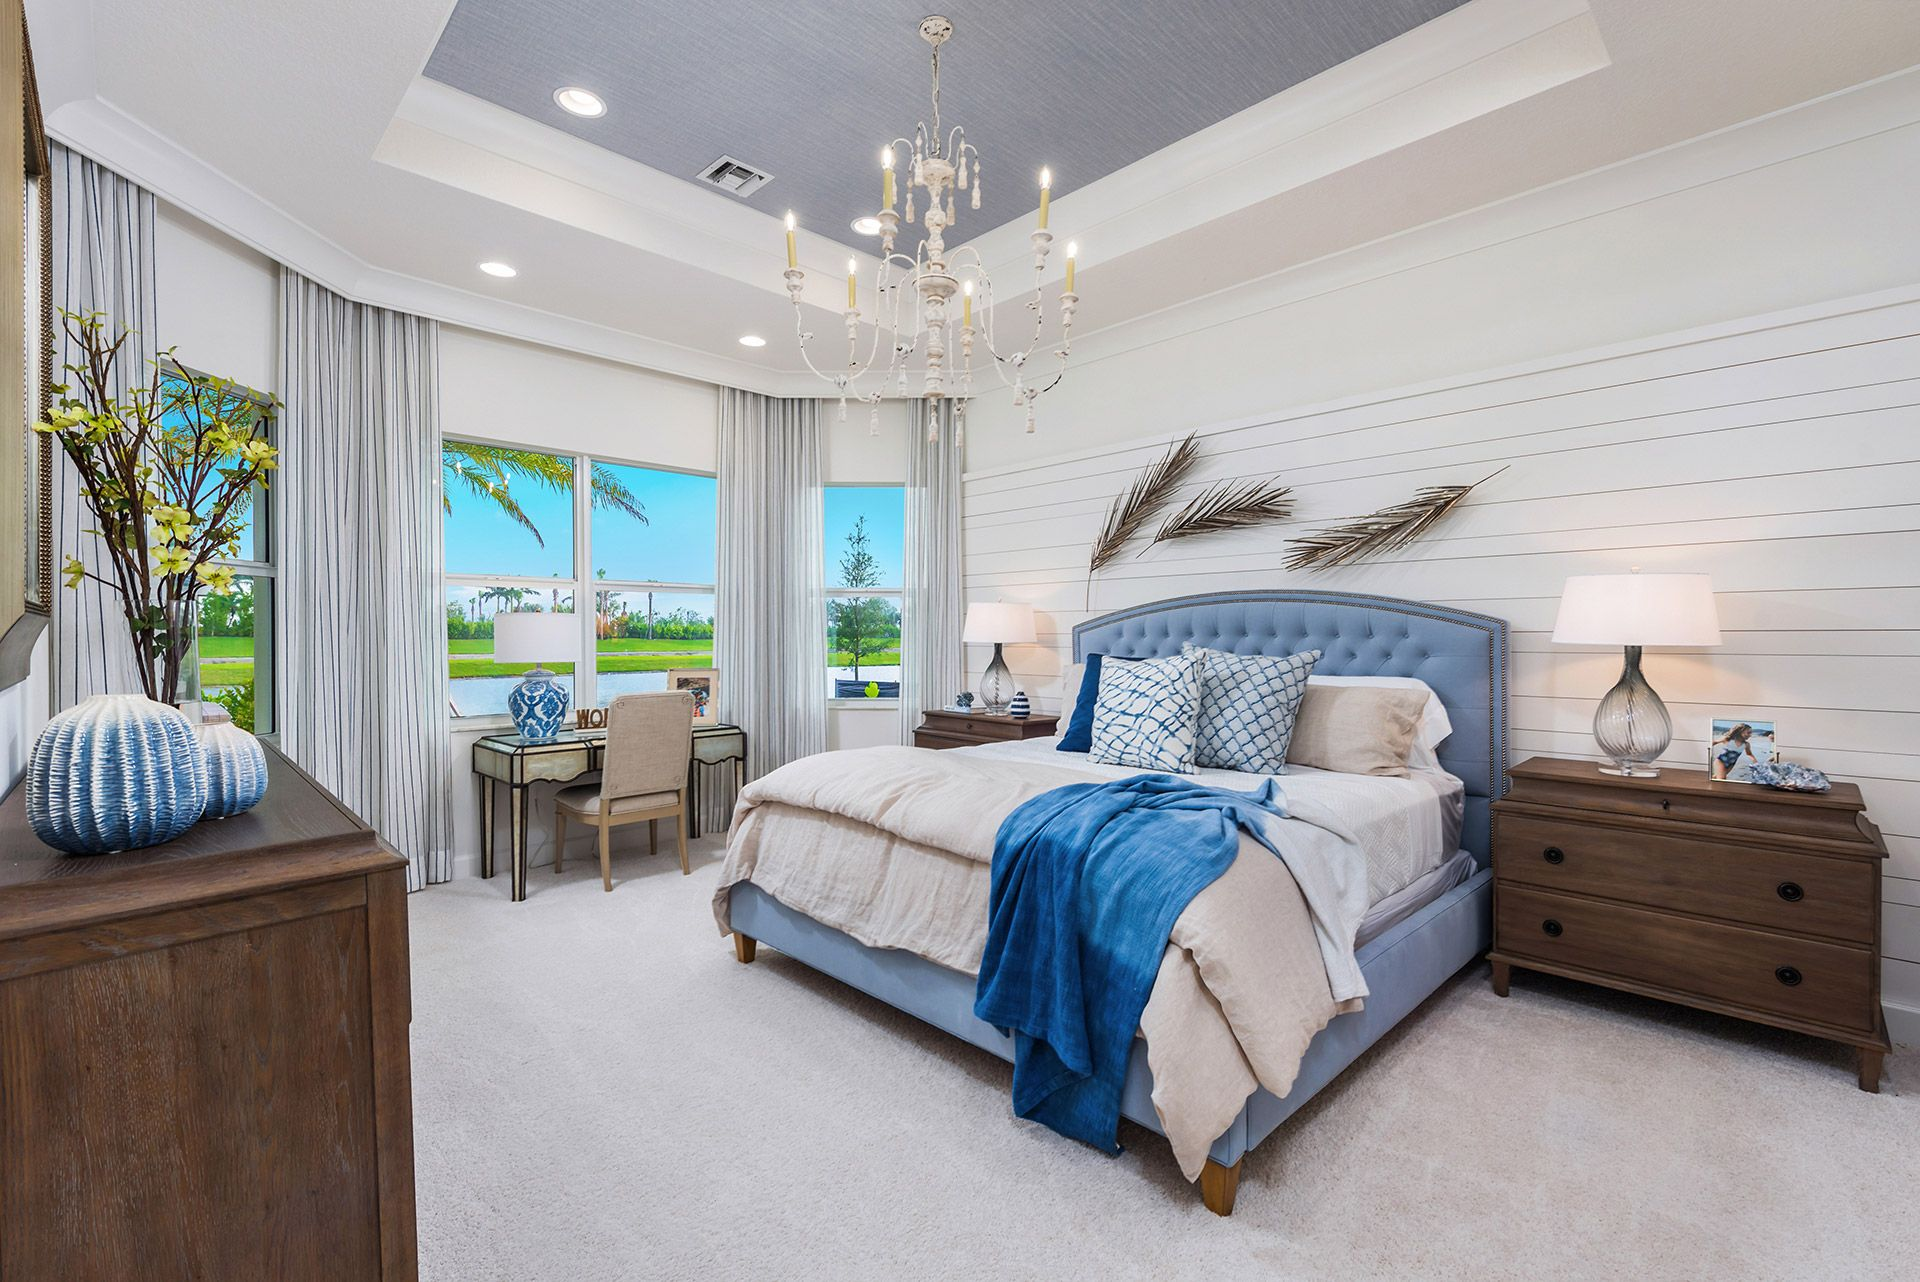 Bedroom featured in the Bianca By GL Homes in Martin-St. Lucie-Okeechobee Counties, FL